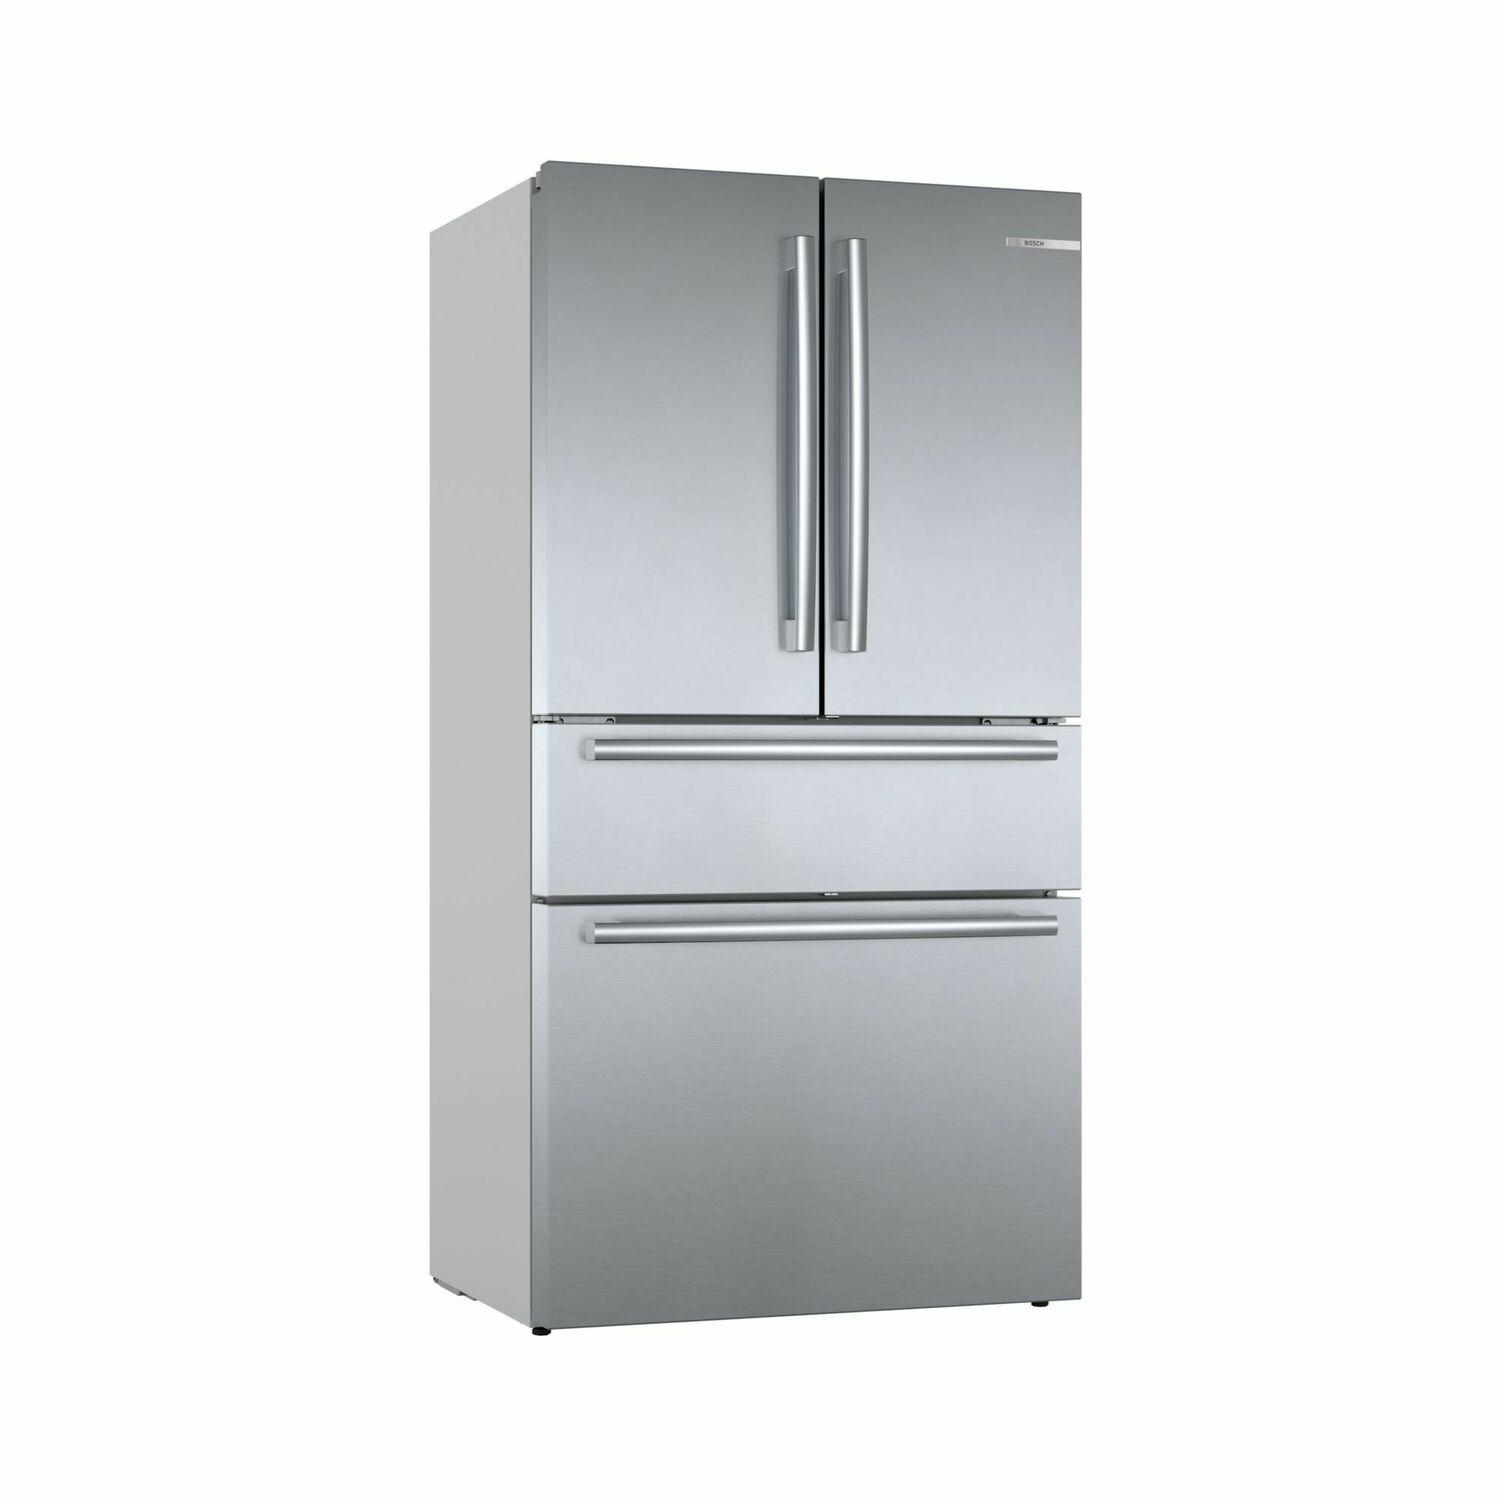 Bosch800 Series French Door Bottom Mount Refrigerator 36'' Easy Clean Stainless Steel B36cl80sns